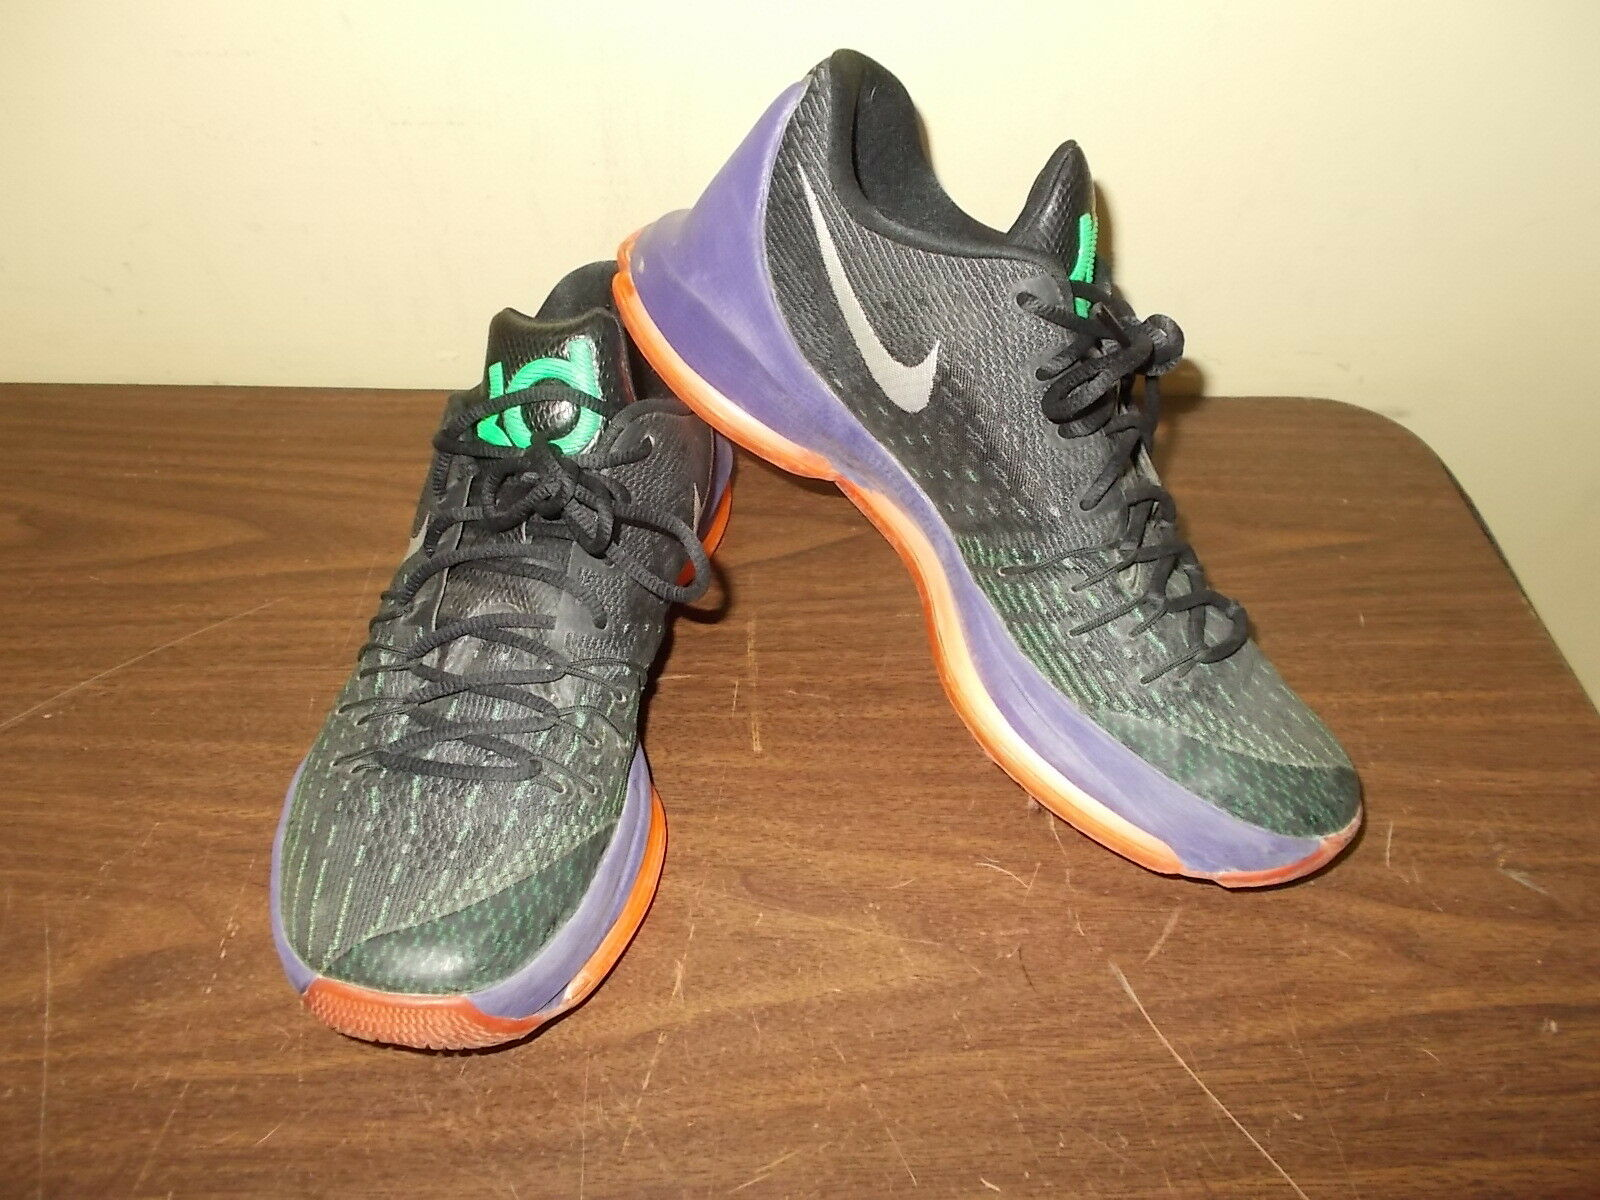 NIKE KD 8 Men's Basketball shoes 749375-013 , Size 9.5 -PRE-OWNED